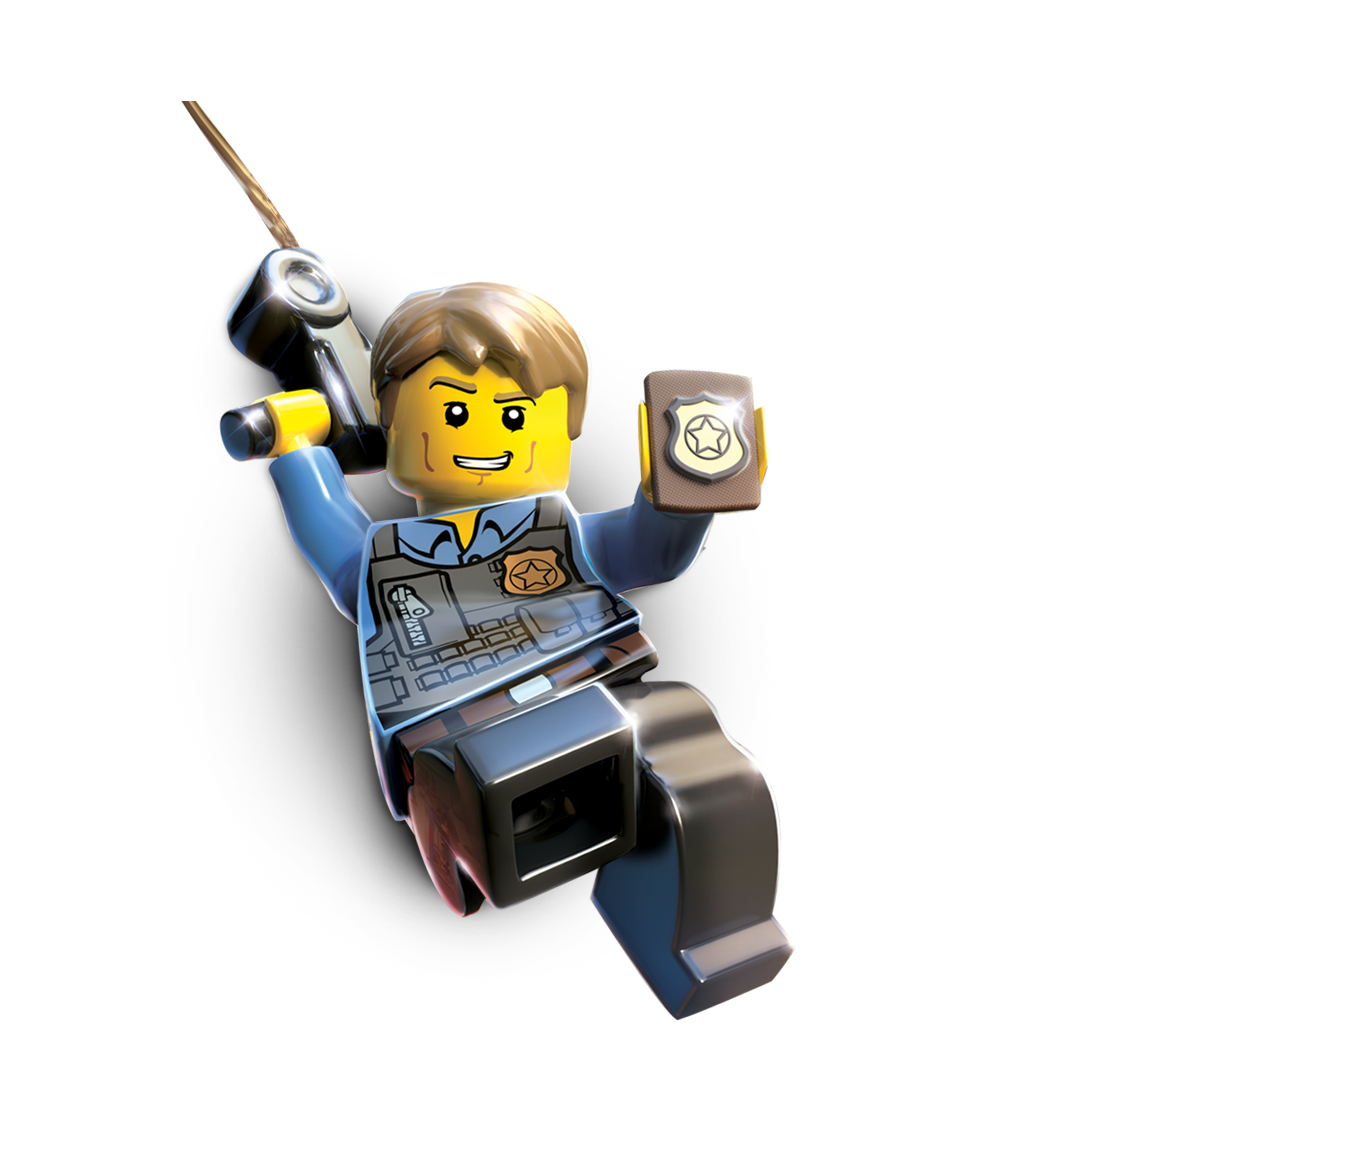 Lego City Undercover The Chase Begins And Lego City Undercover For Wiiu 2 3 While Technically 2 Games I Ll Take It As 1 A Lego City Undercover Lego City Lego